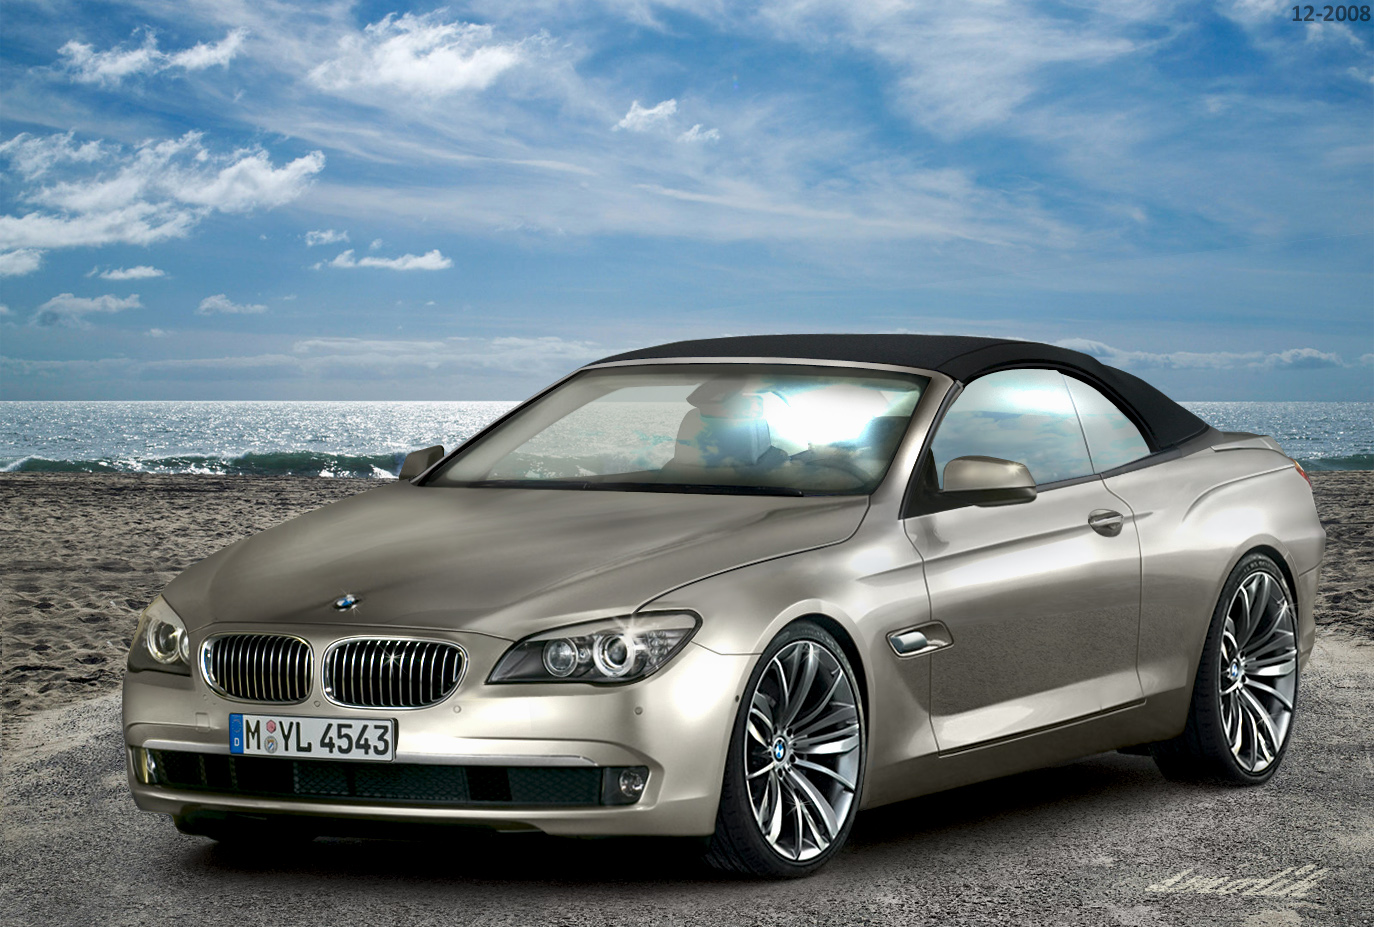 bmw 6 series bmw auto cars. Black Bedroom Furniture Sets. Home Design Ideas